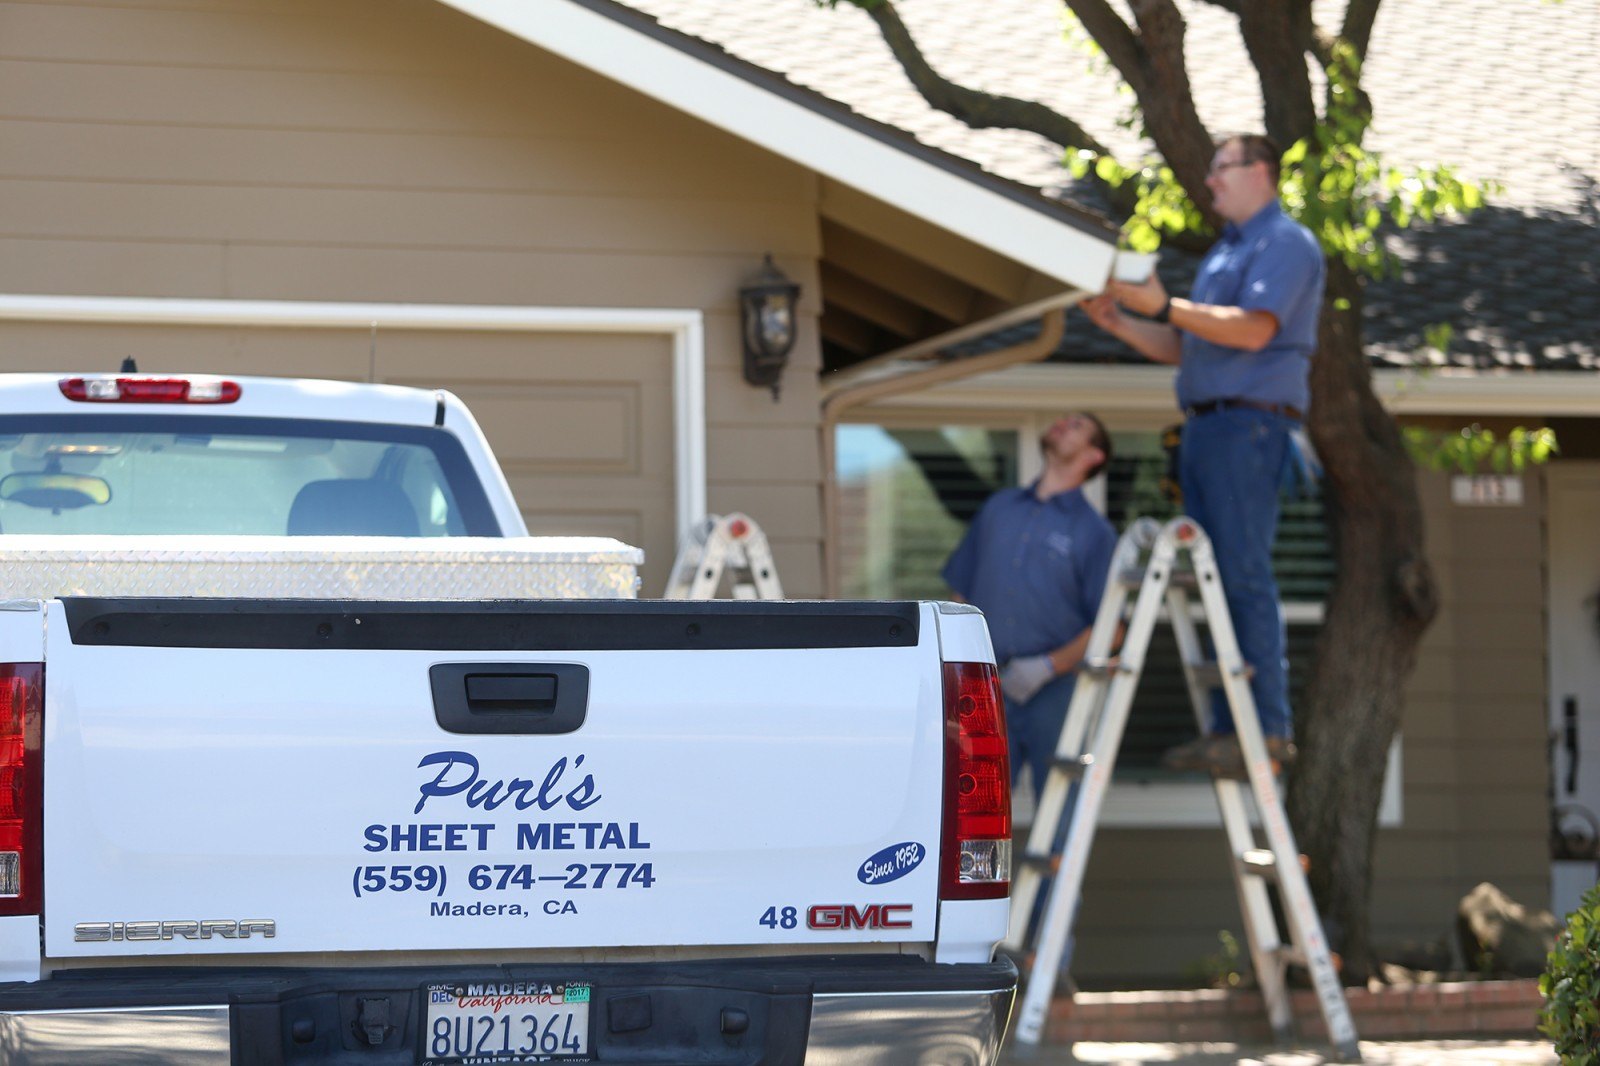 Rain gutter replacement Purls Sheet Metal Madera CA